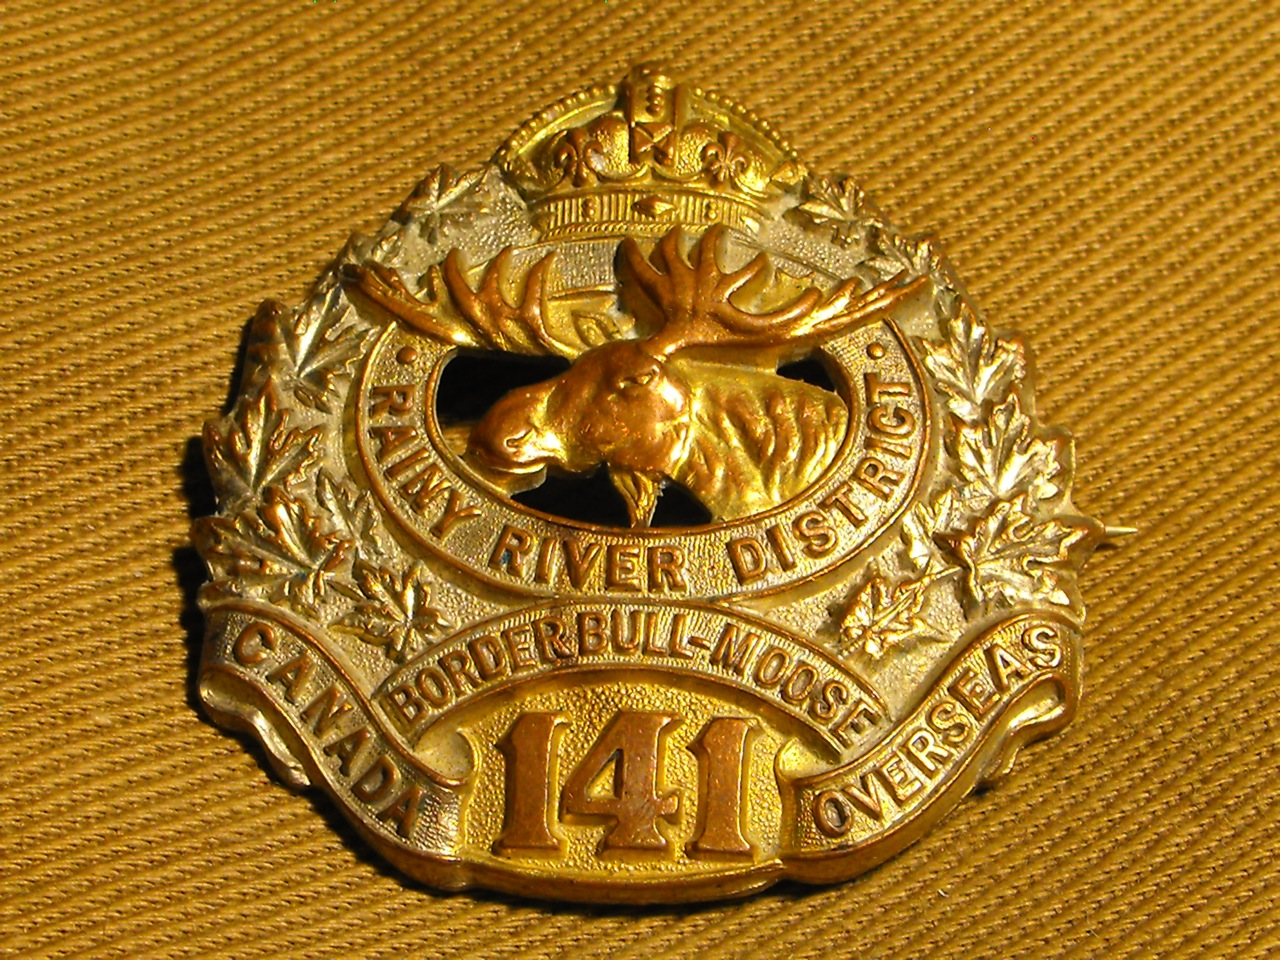 141st Bn (Rainy River, Border) Cap Badge